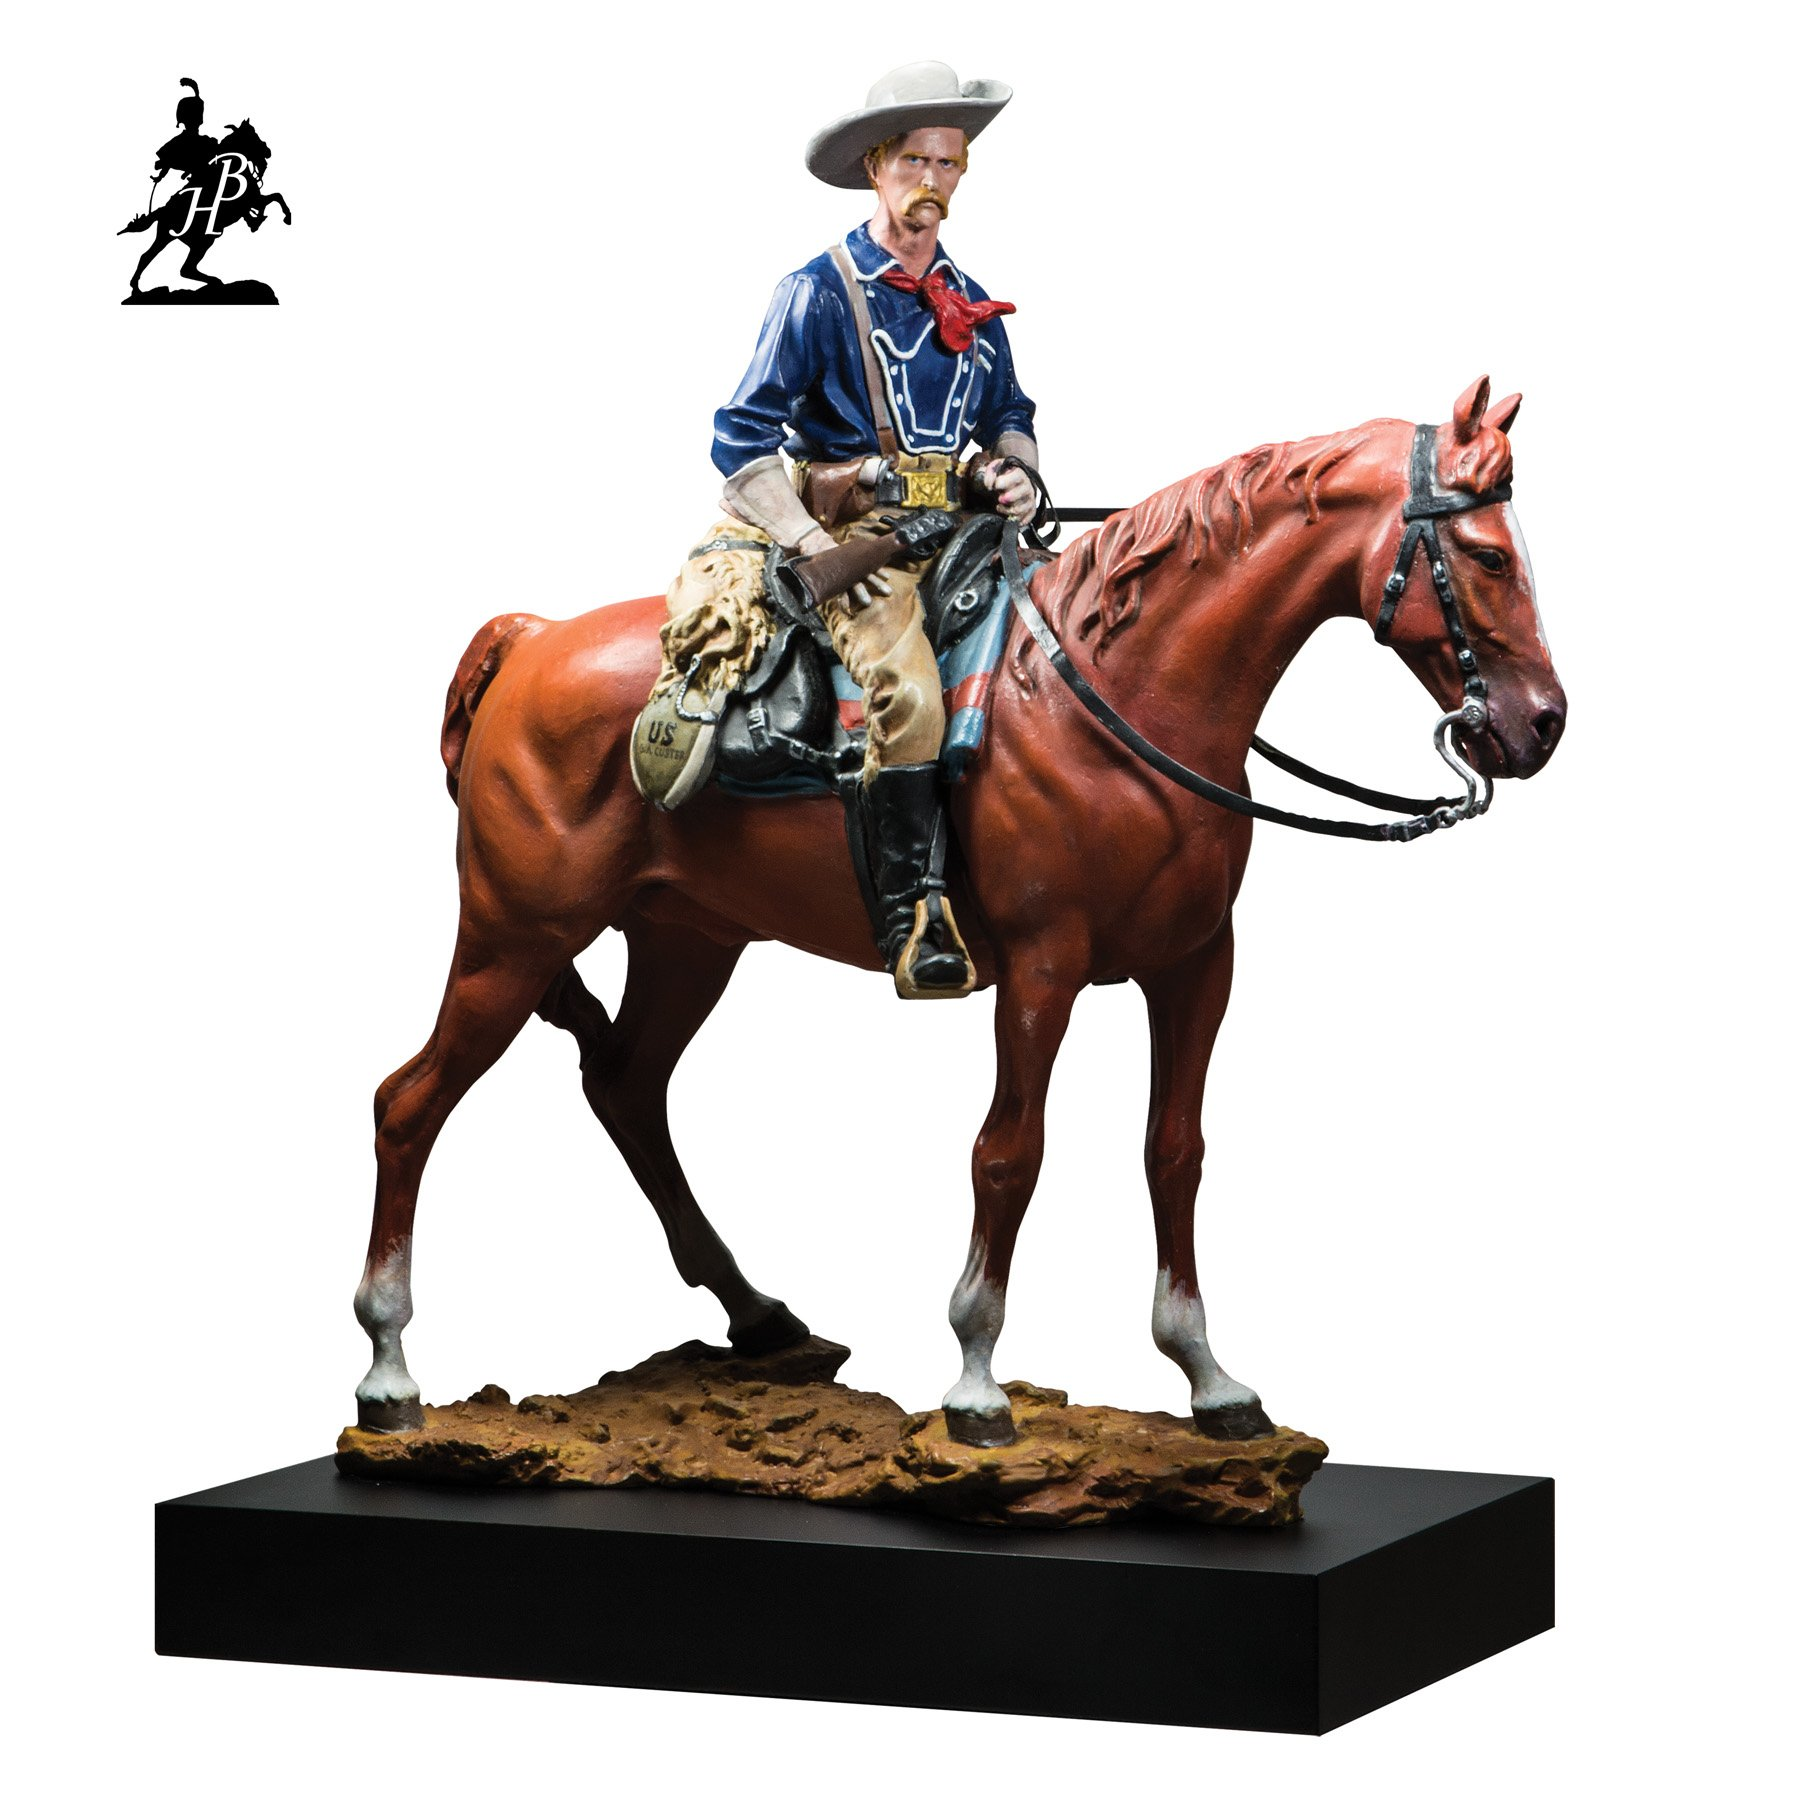 Fernando  Andrea; Polychromed General Georg..., 2014, Original Sculpture Bronze, 7.5 x 17 inches. Artwork description: 241  i? 1/2General George Armstrong CusterSon of the Morning Stari? 1/2Polychrome bronze version,available by special order only.  BY FERNANDO ANDREASCALE 16 BRONZE SCULPTURELIMITED EDITION 20 copiesCERTIFICATE OF AUTHENTICITY INCLUDEDWax Stamp and signature of the sculptorHISTORYBeginning in the Renaissance, bronzes were finished with an essentially monochromatic patination ...